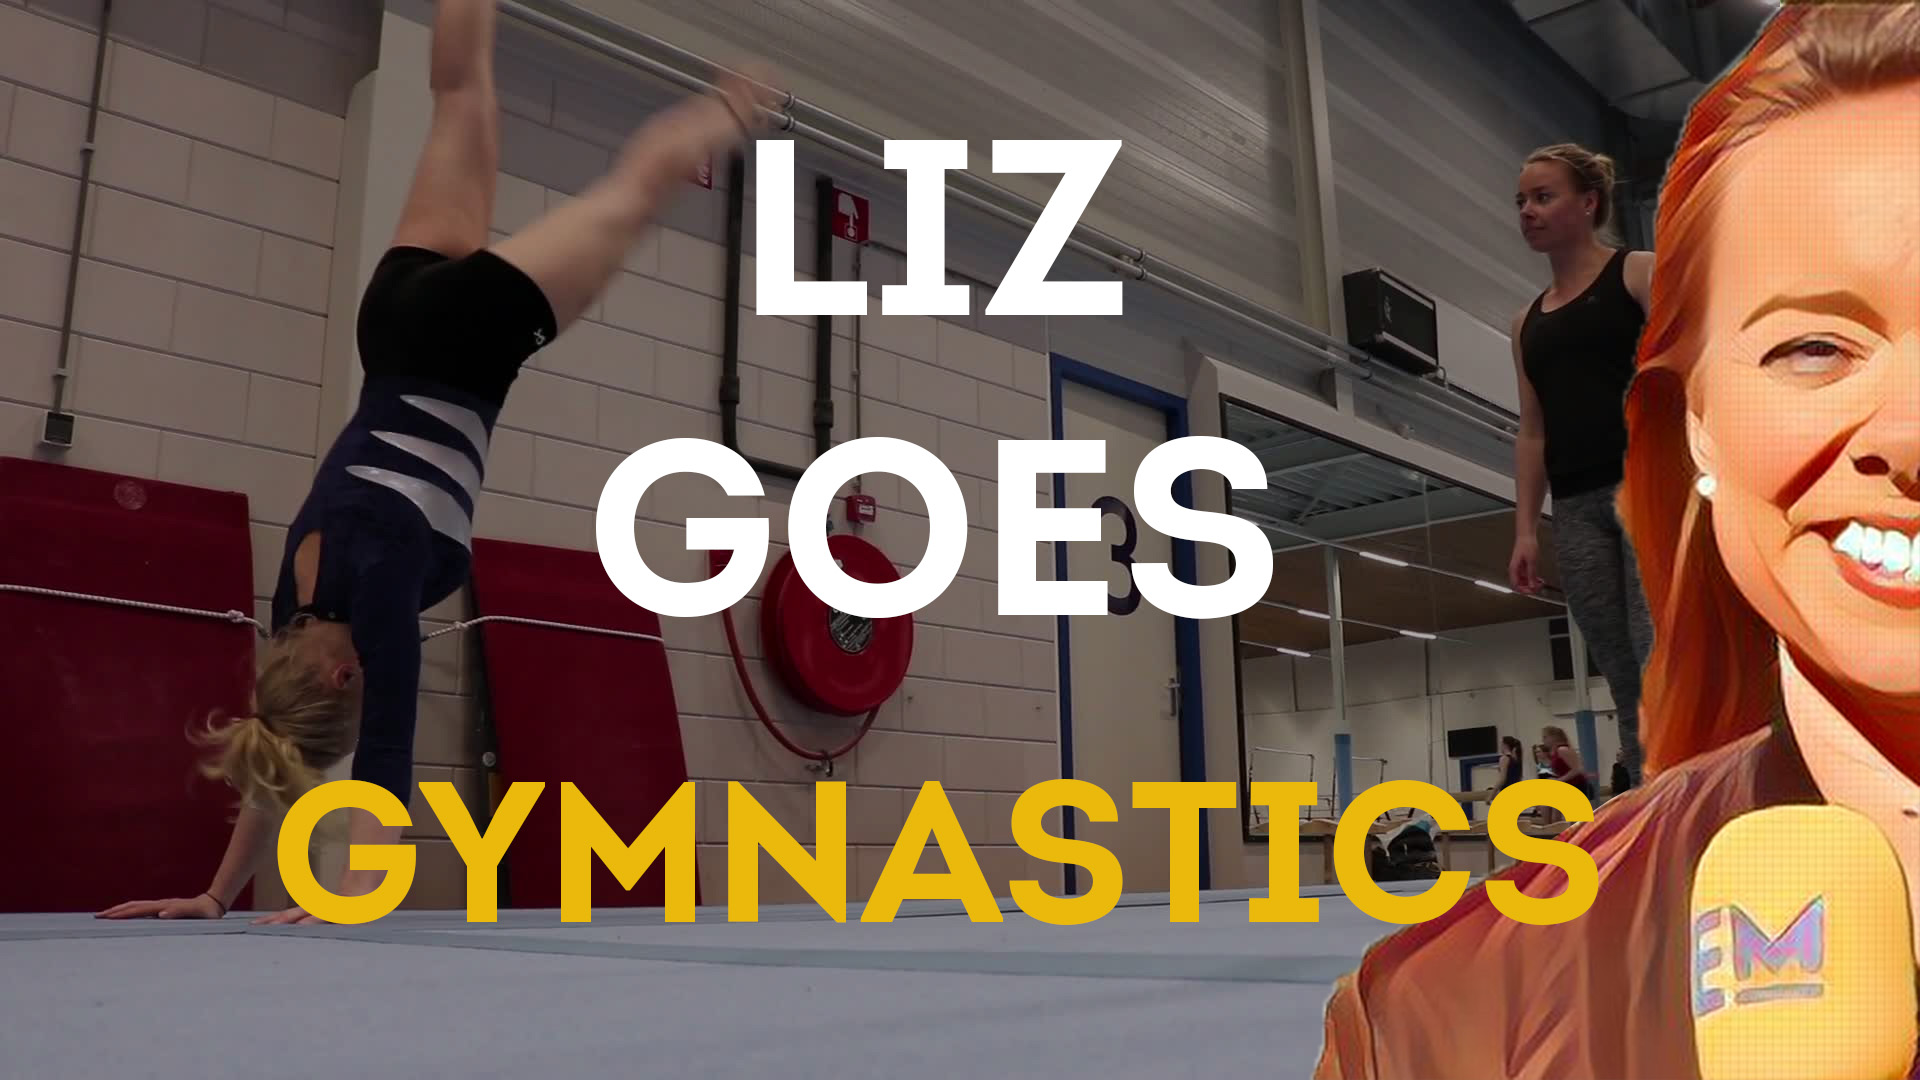 liz goes gymnastics